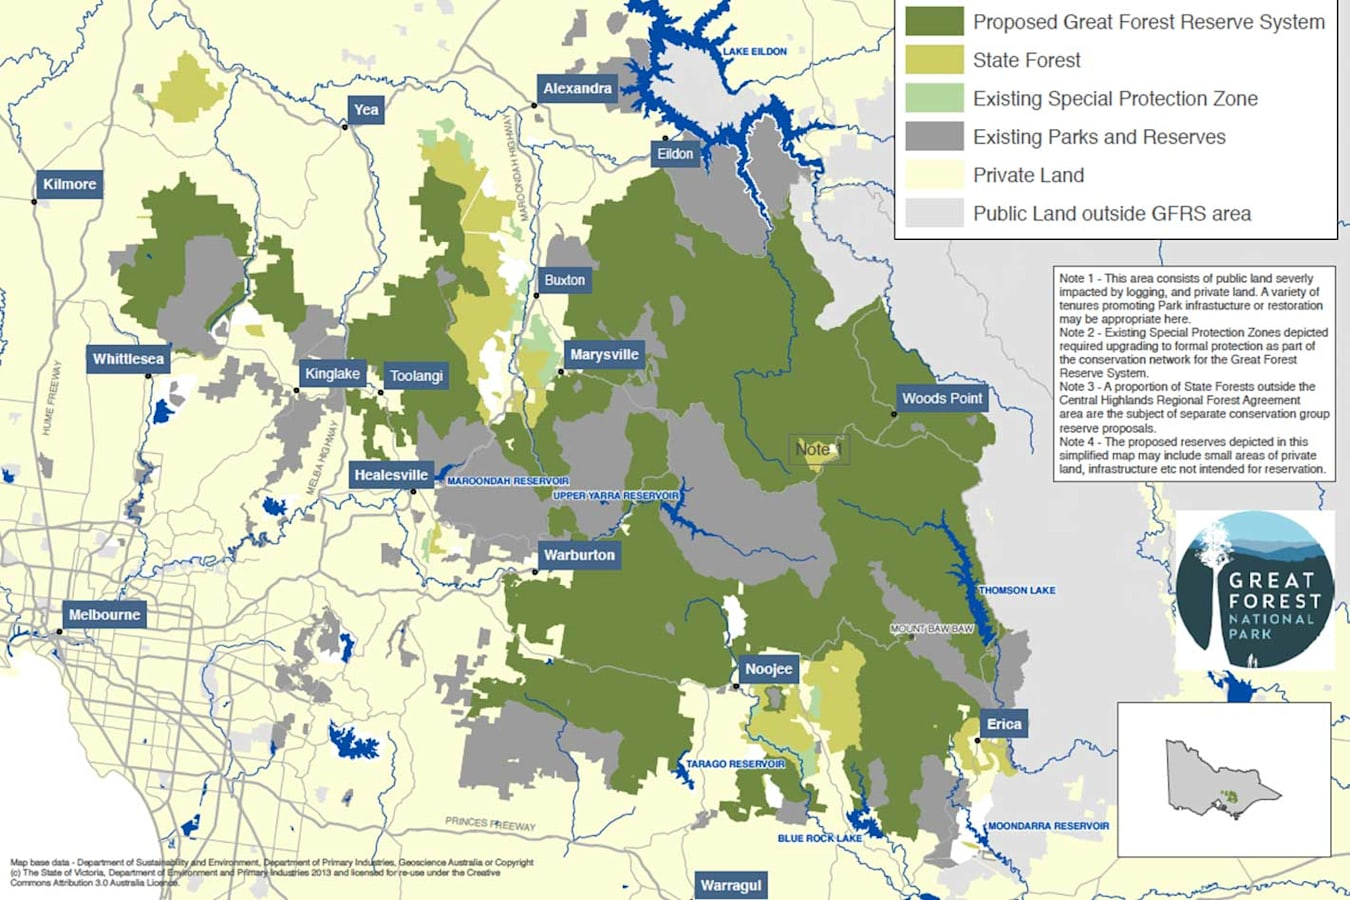 Great Forest National Park Propsed Map 281 29 Jpg